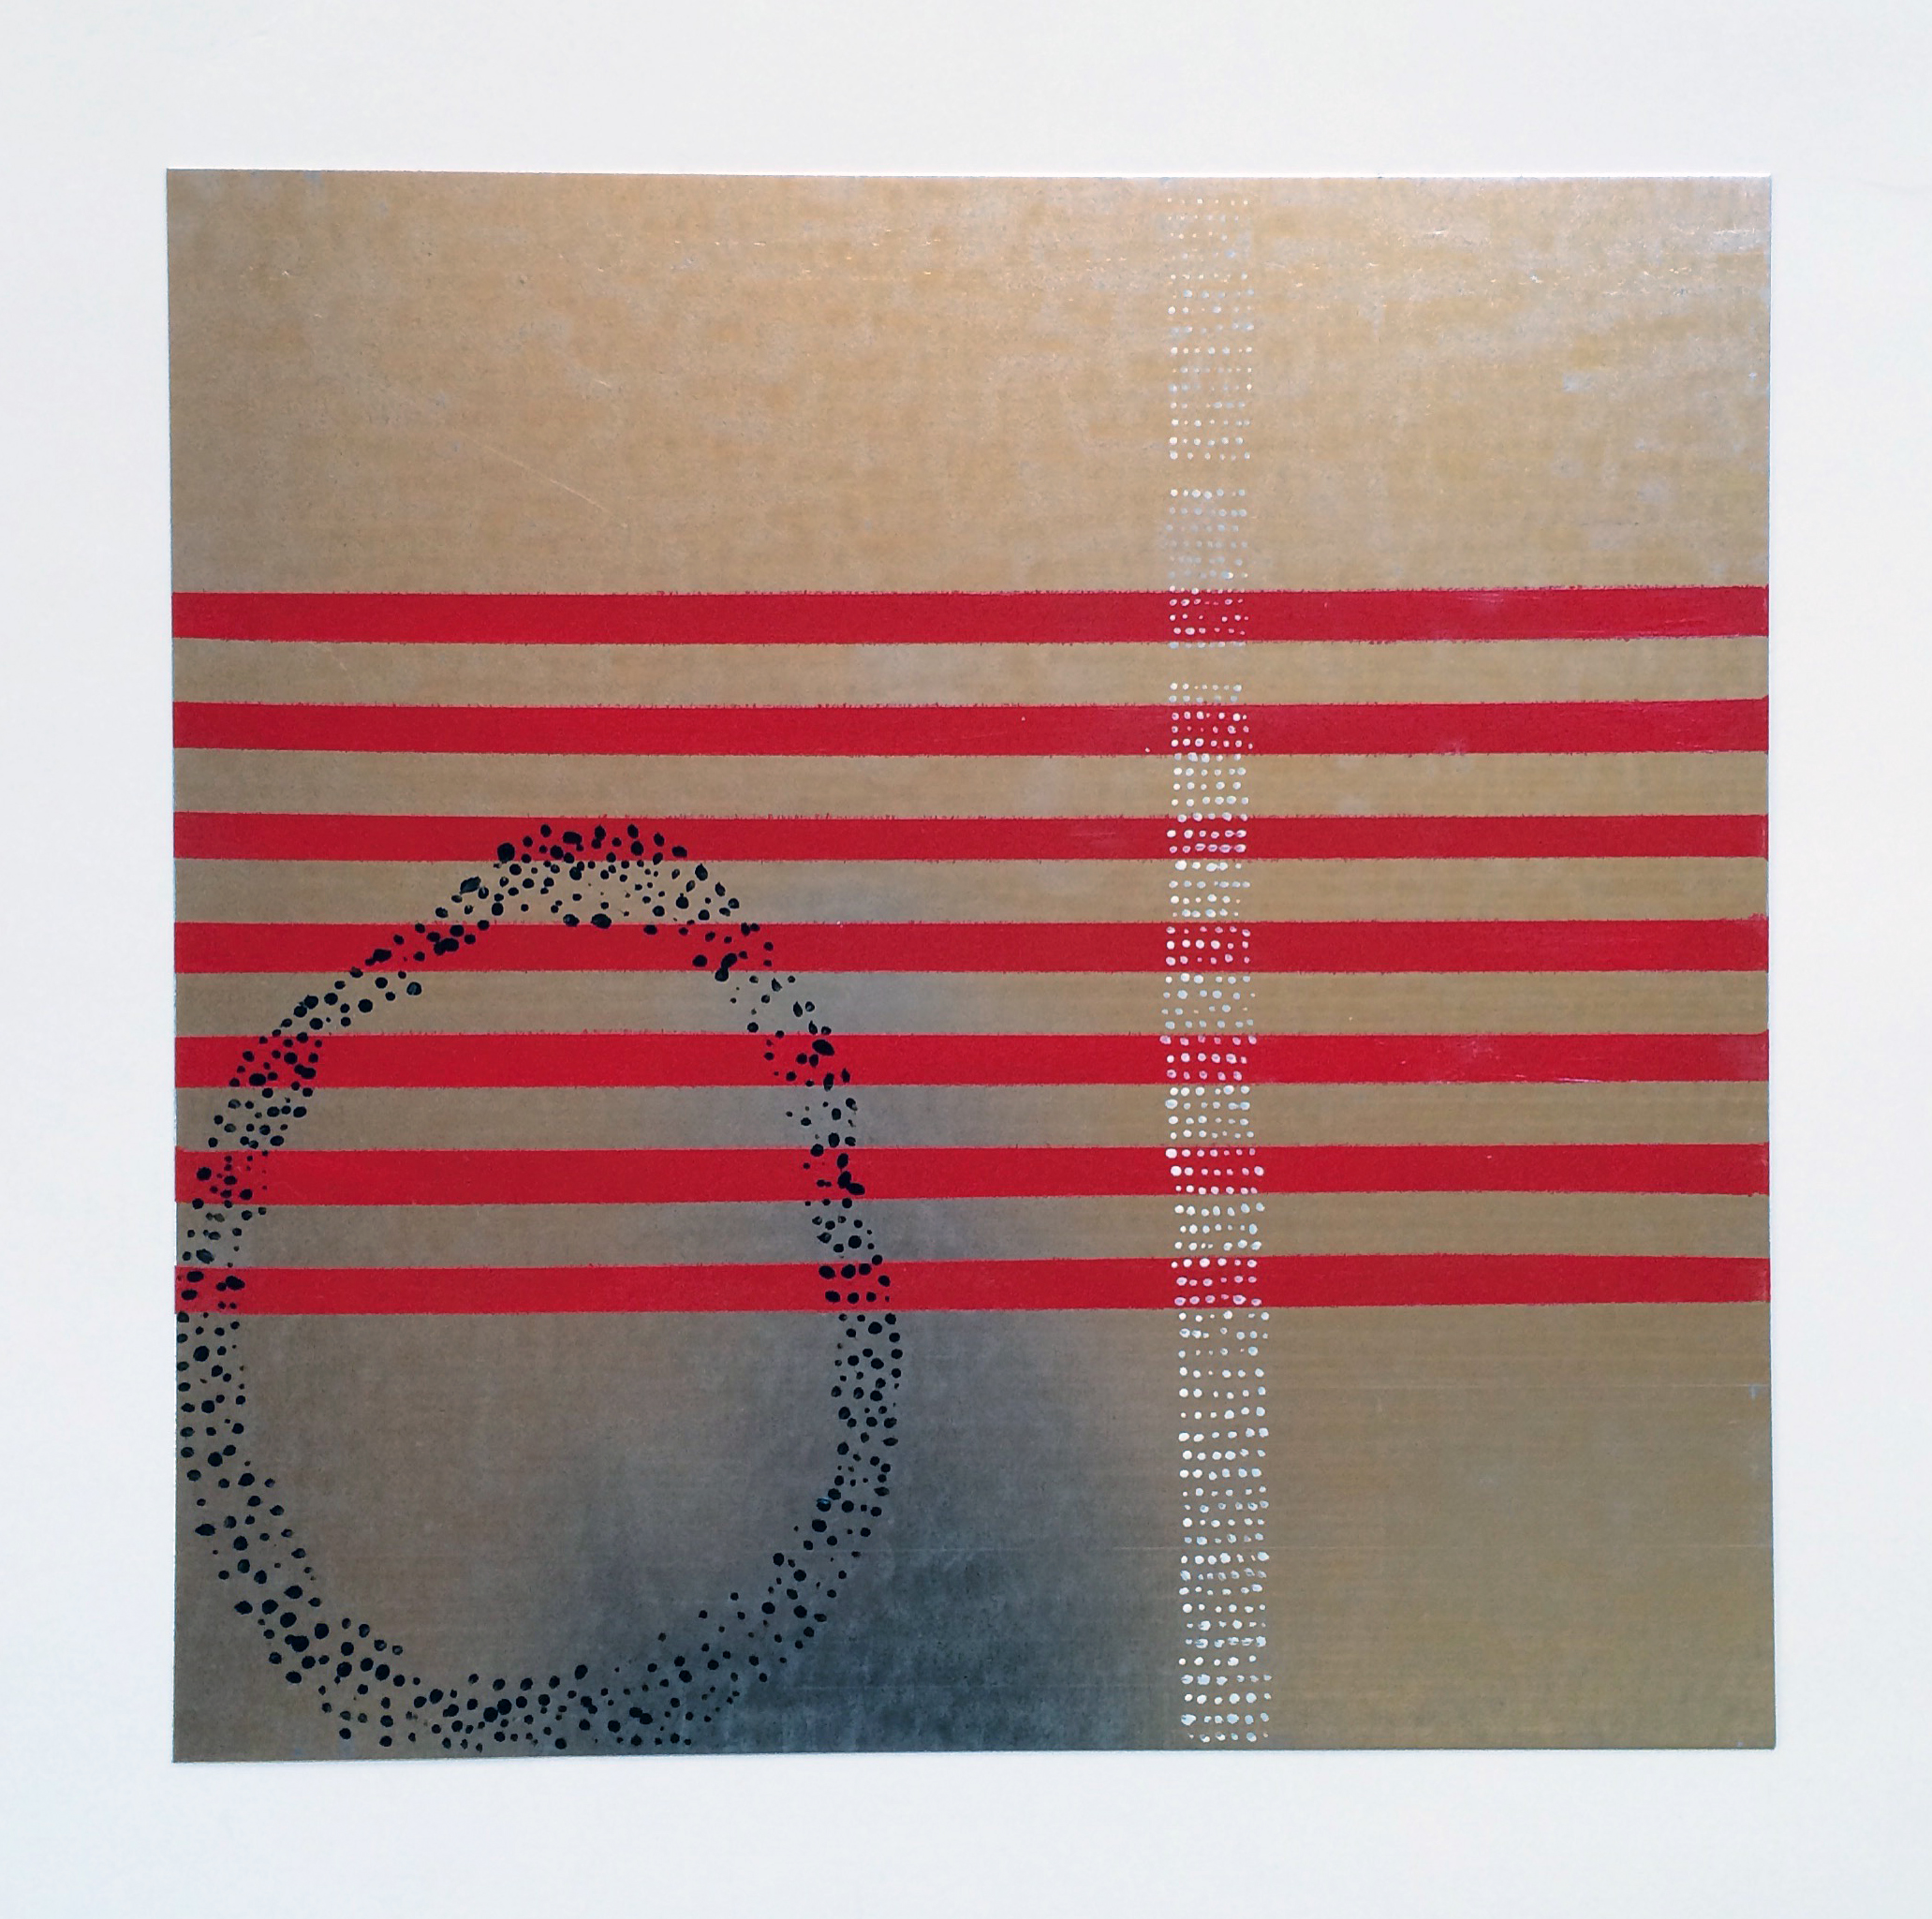 abstract on sheet metal | acrylic | 12x12 in